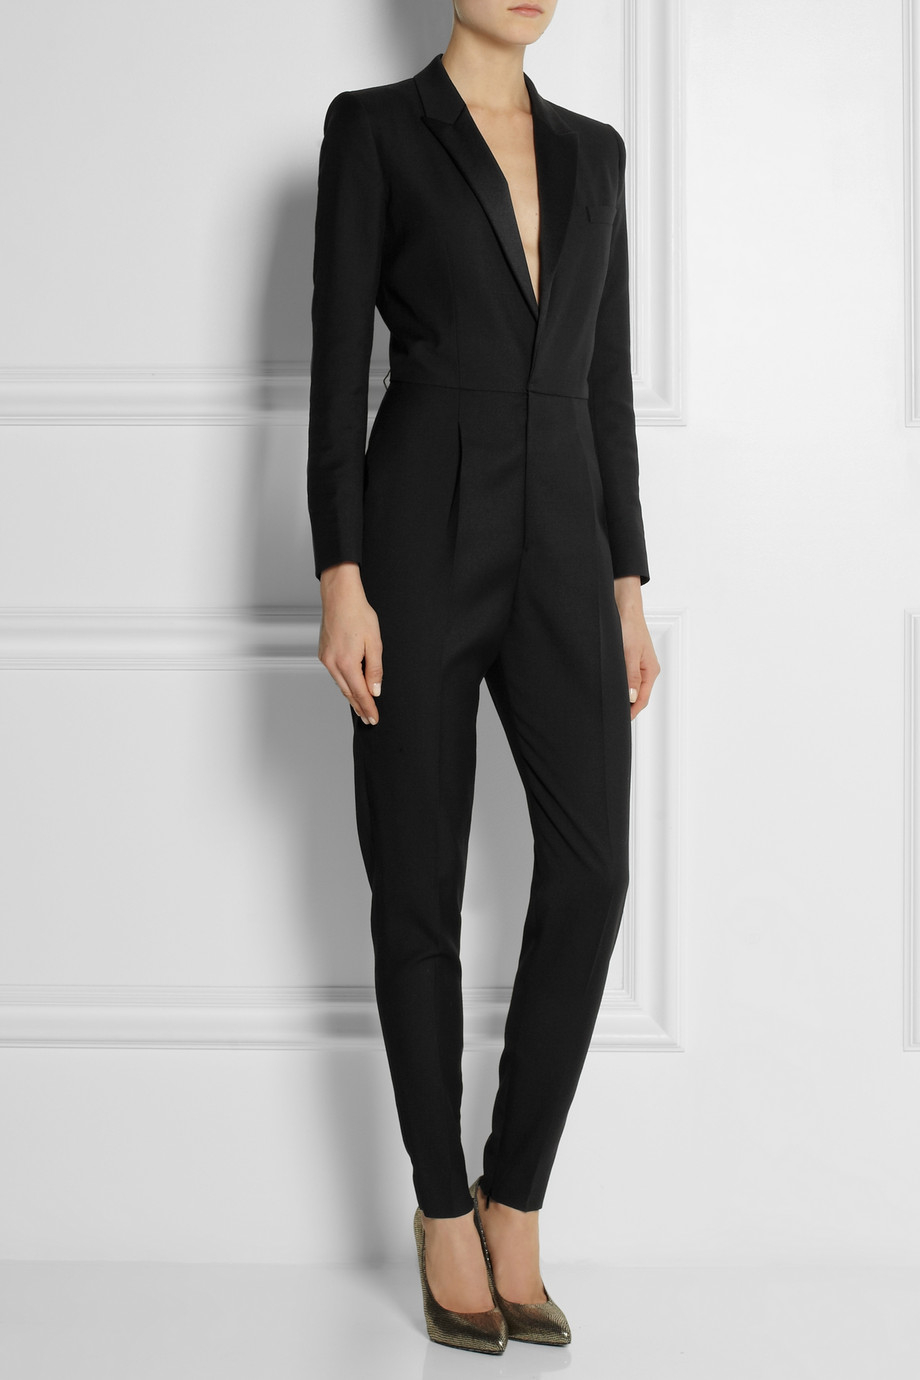 Lyst Saint Laurent Wool Gabardine Tuxedo Jumpsuit In Black